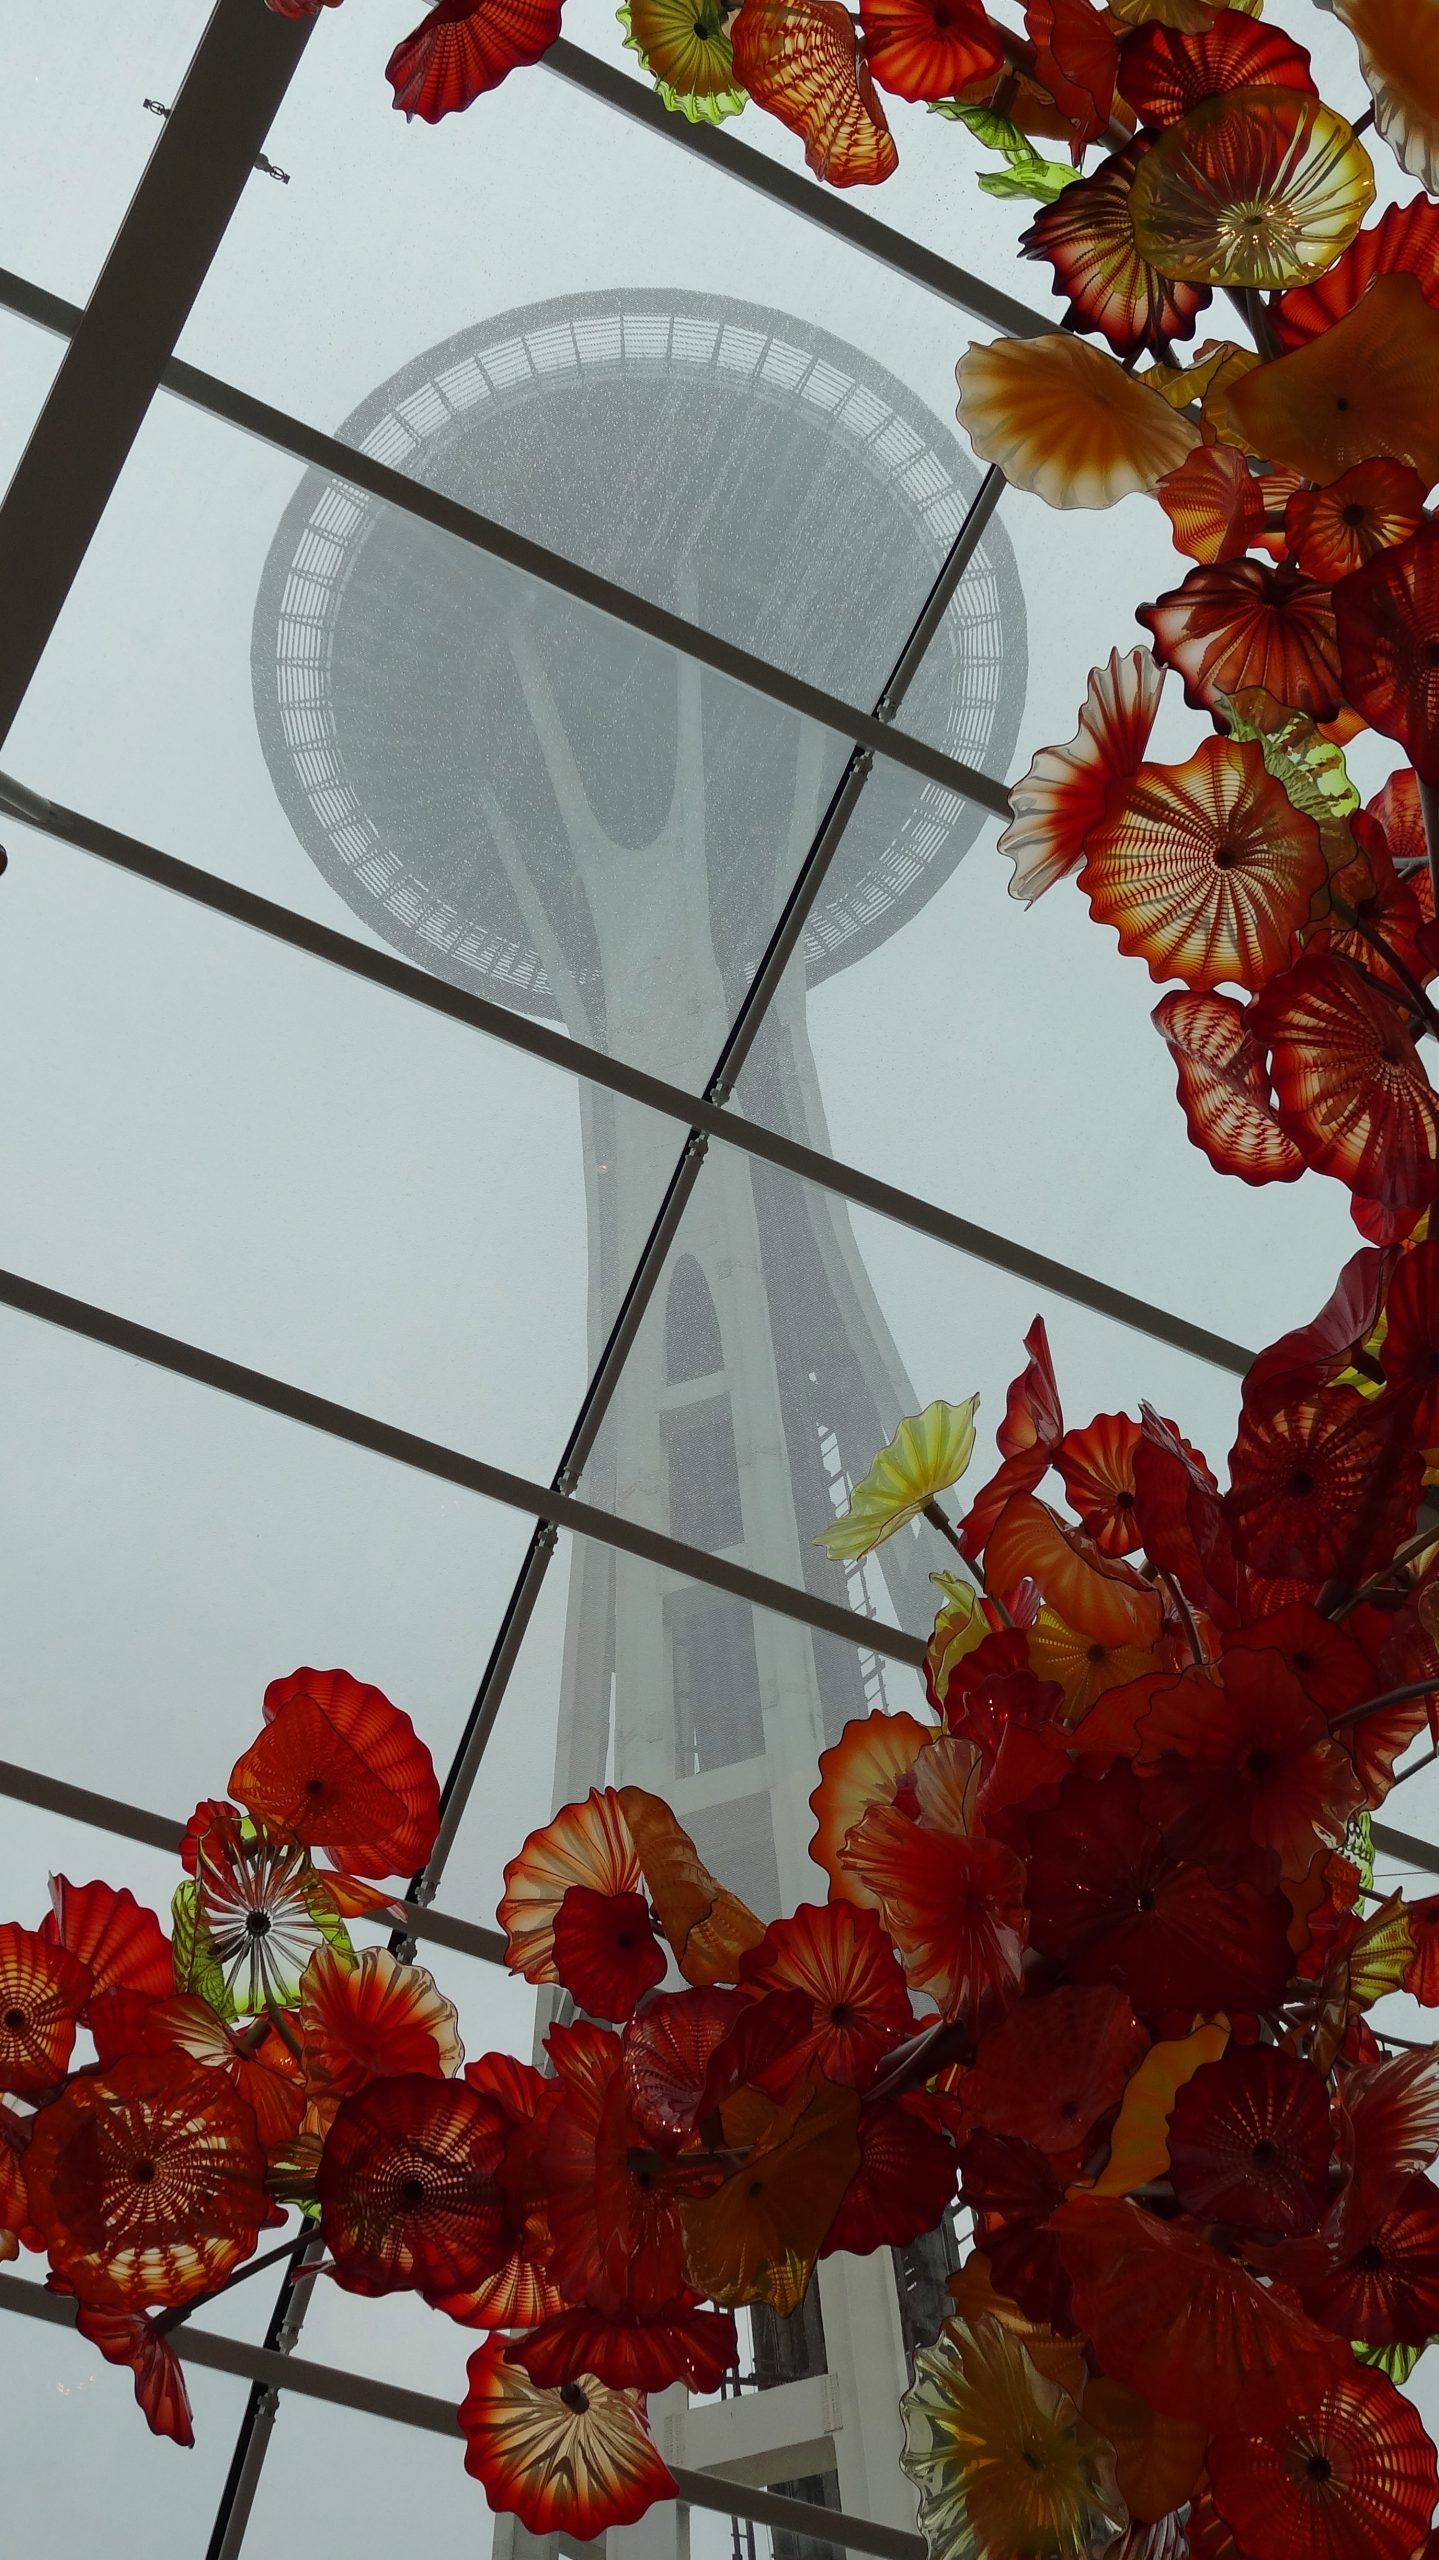 The Space Needle is framed by a glass sculpture at the Chihuly Garden and Glass exhibit in Seattle. Photo by Annette Crawford.